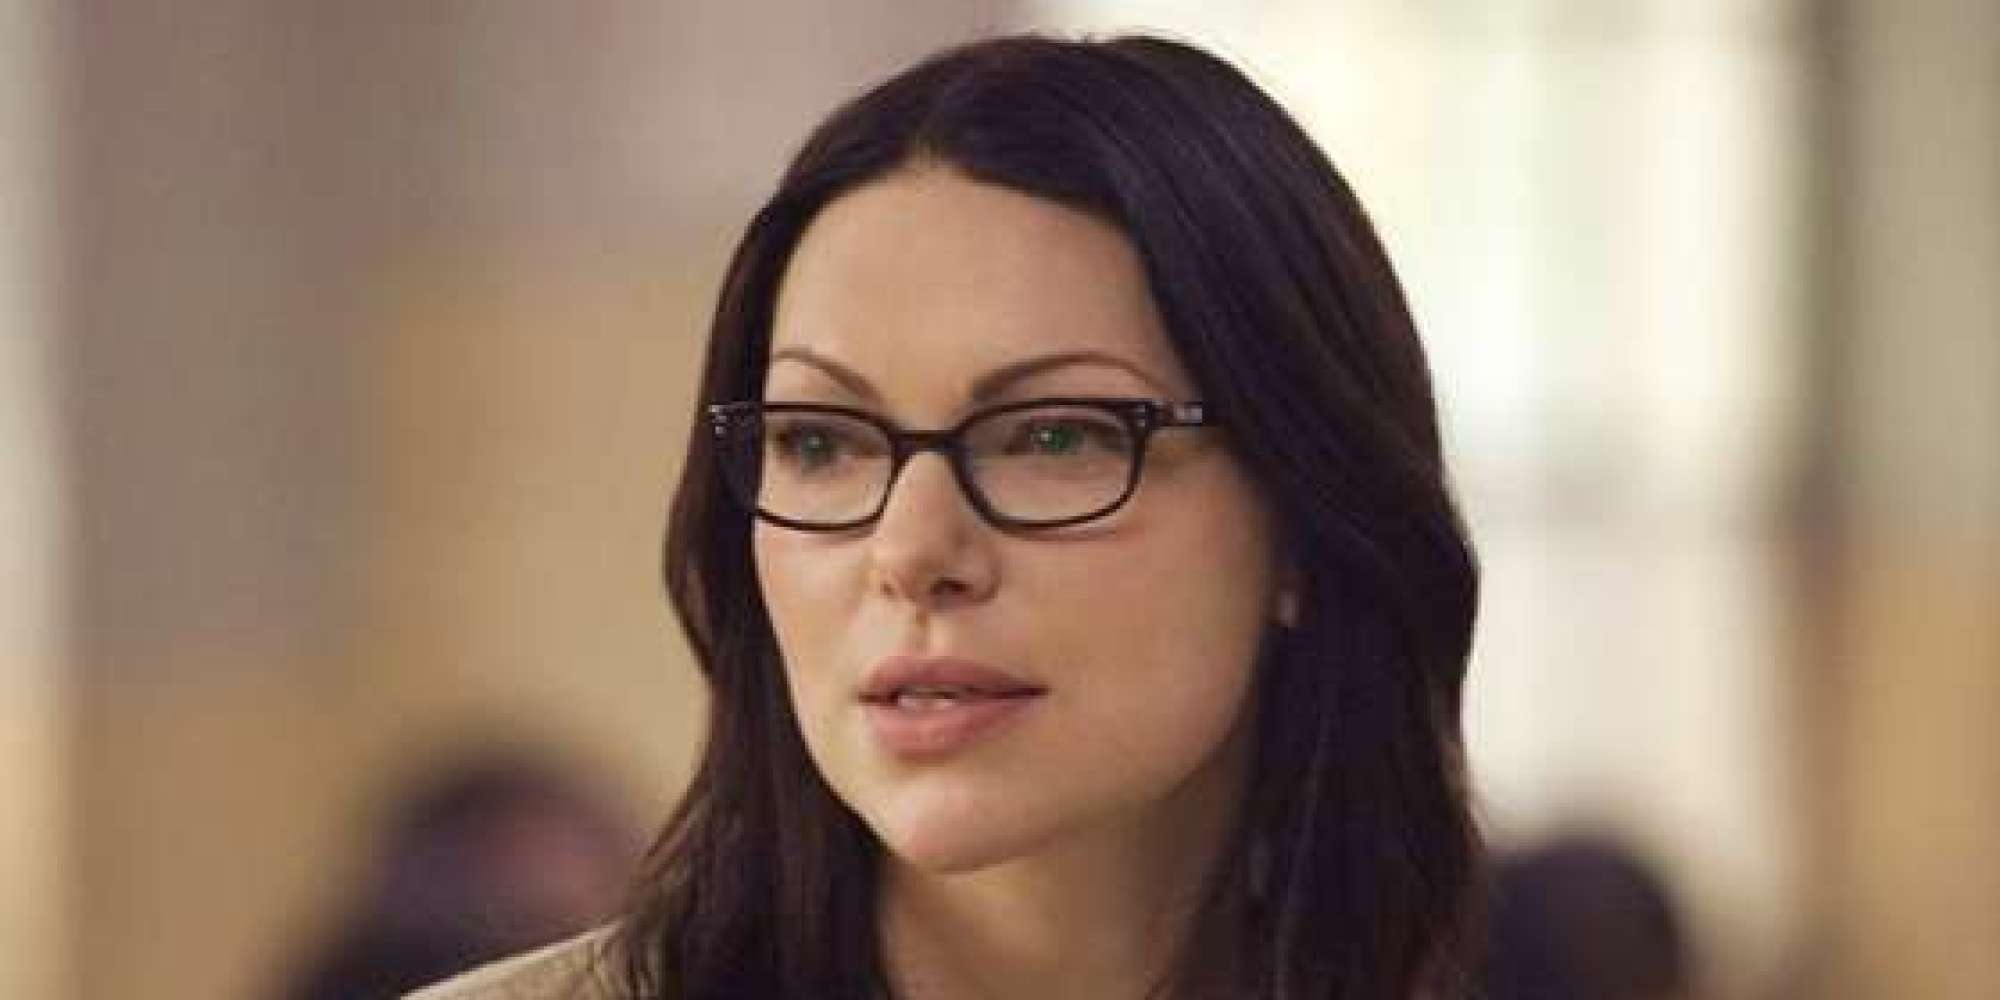 Laura Prepon Is Back Behind Bars In Season 3 Of Oitnb